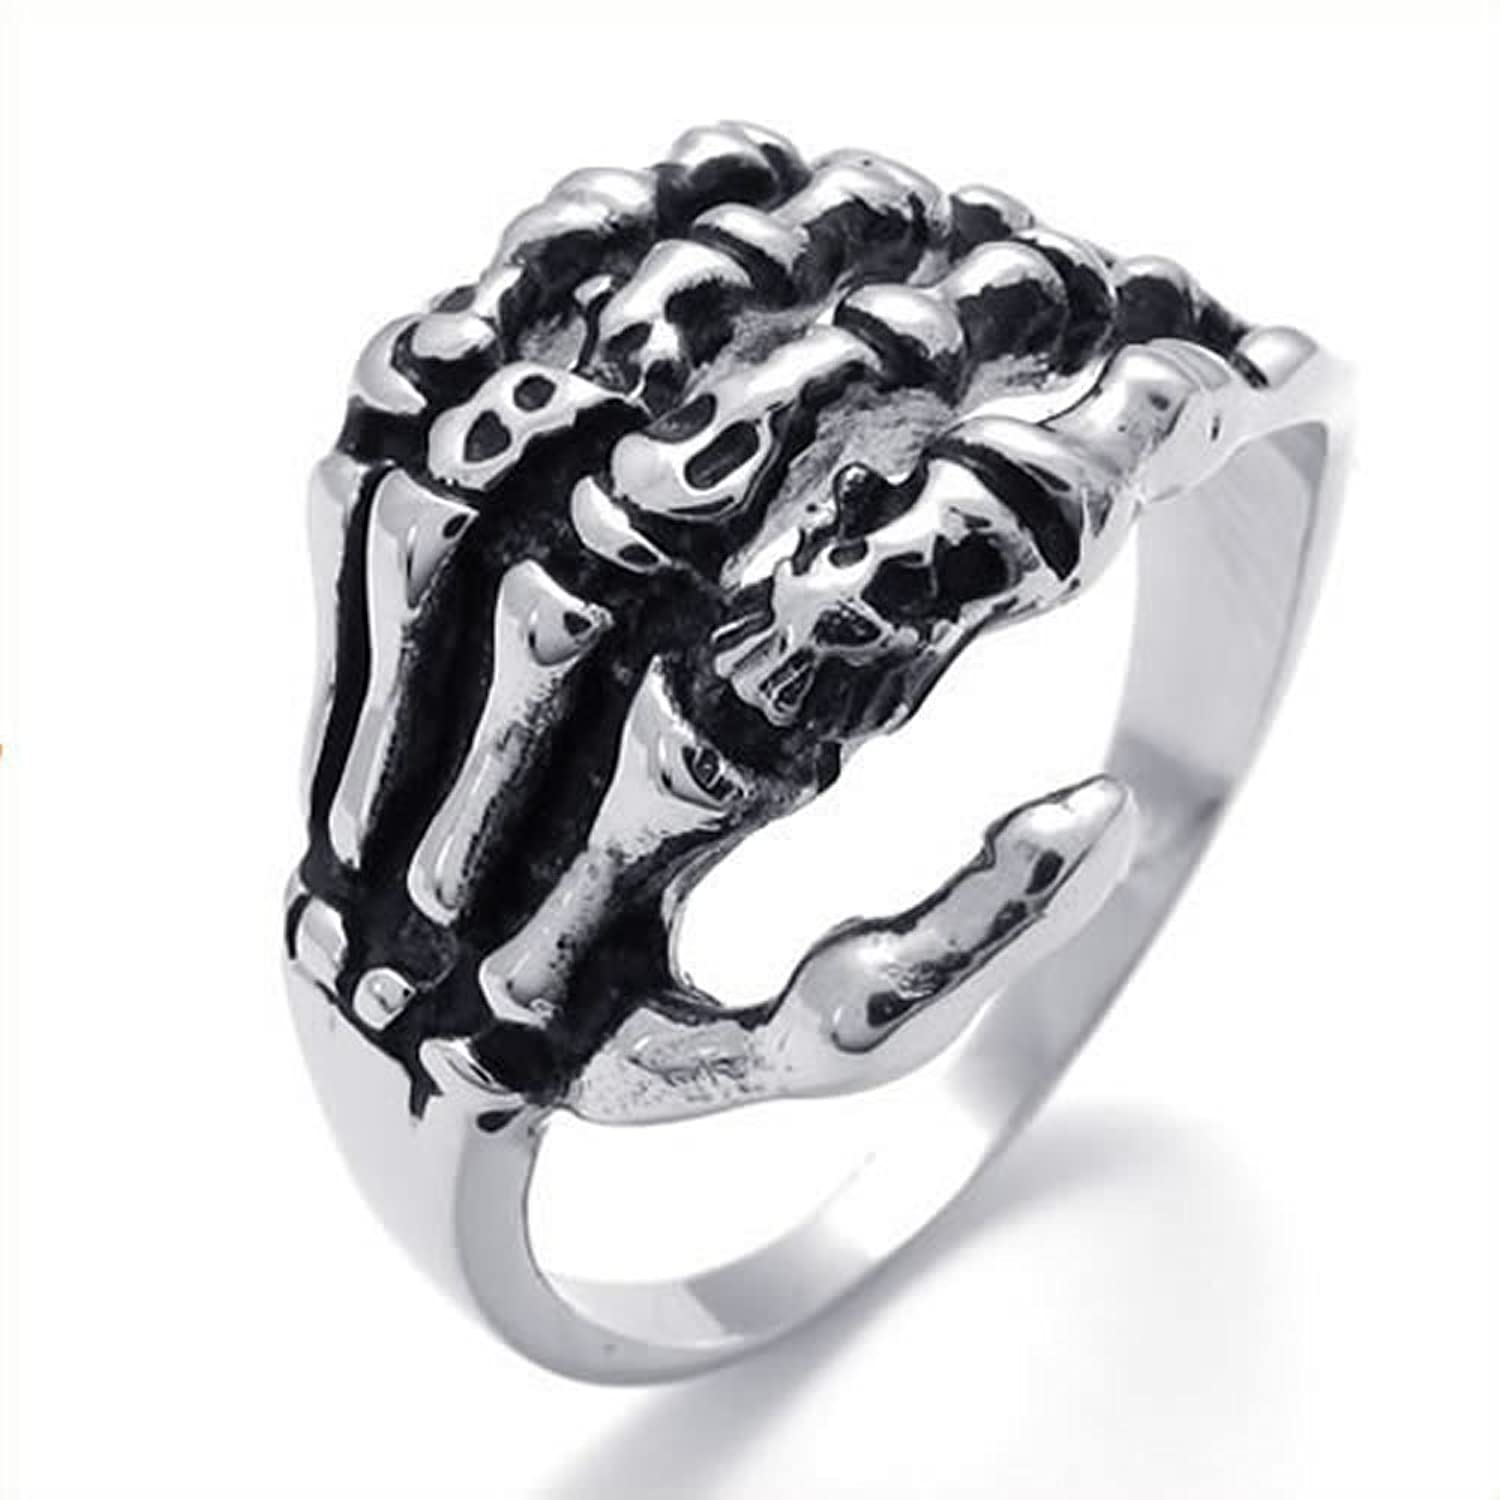 skeleton rings ring bundlesoffer punk main style skull products